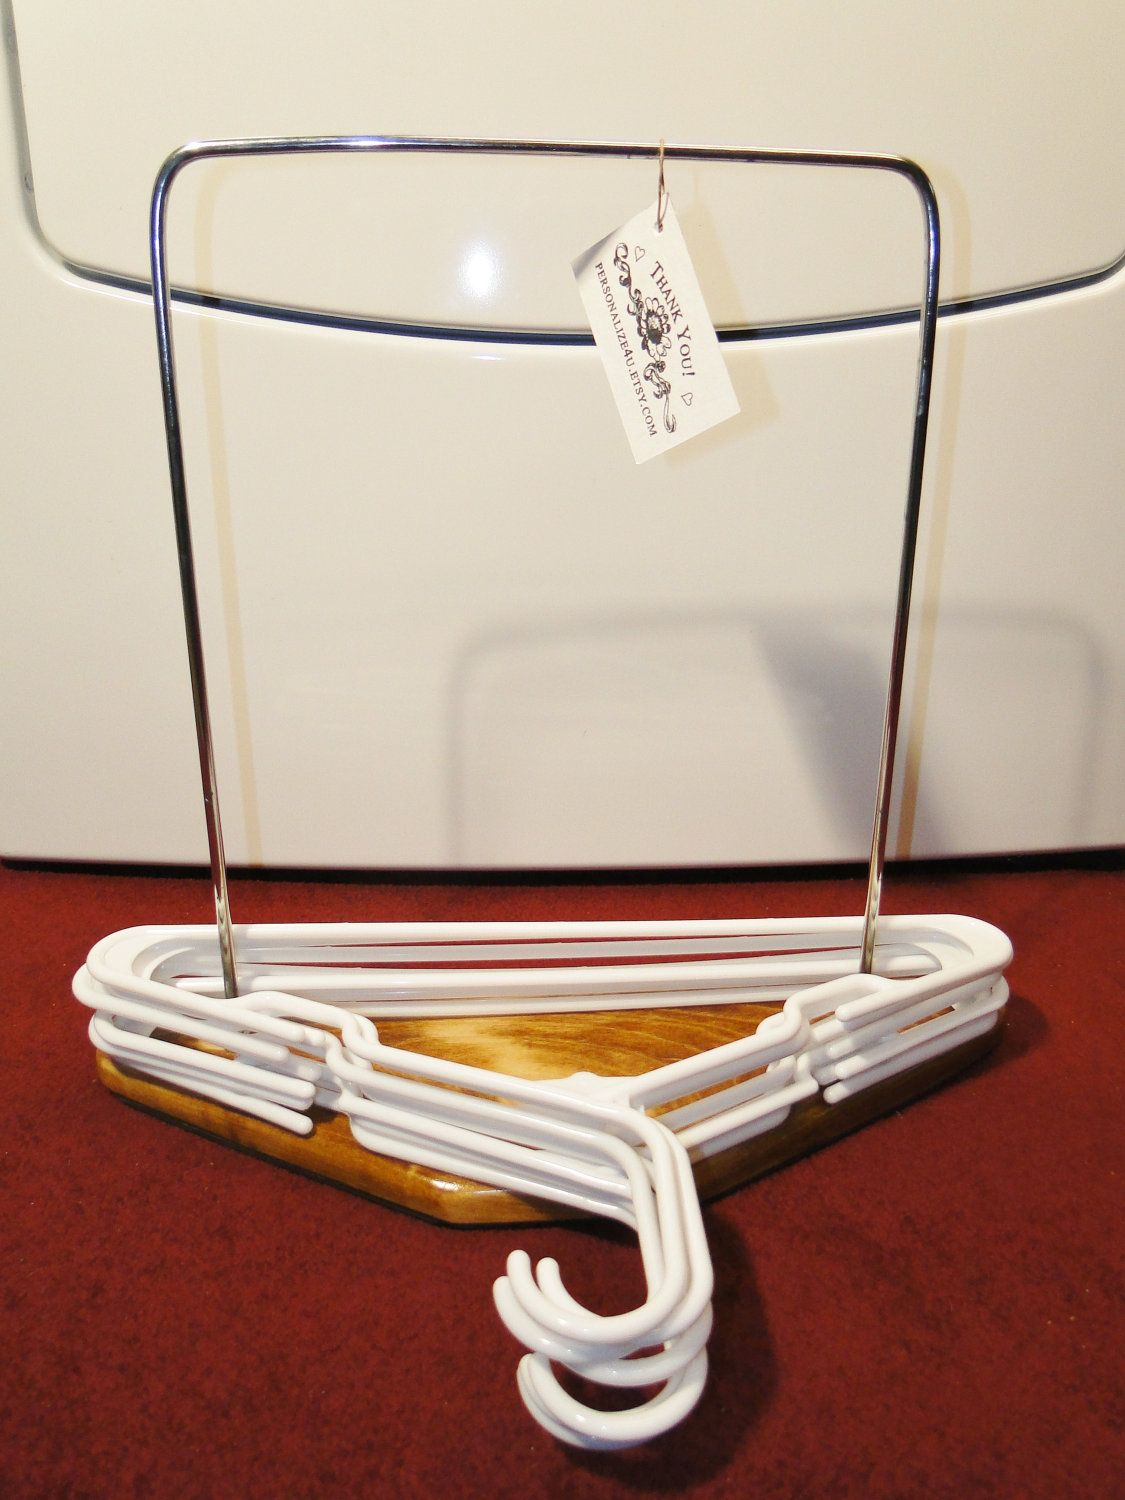 Clothes hanger organizer stand for the laundry room bedroom closet wood base metal holder great wedding shower gift idea organizing storage is part of bedroom Closet Wood - color in base will naturally vary from photo  More are available, buy extra to keep in your bedroom closets to catch your empty hangers! If you would like to buy more than 1, please convo me for shipping cost  If you want more than what is showing is available, convo me for time frame and availability as I can make more  I have had several previous buyers tell me that they LOVE THEM!! (Hangers not included)